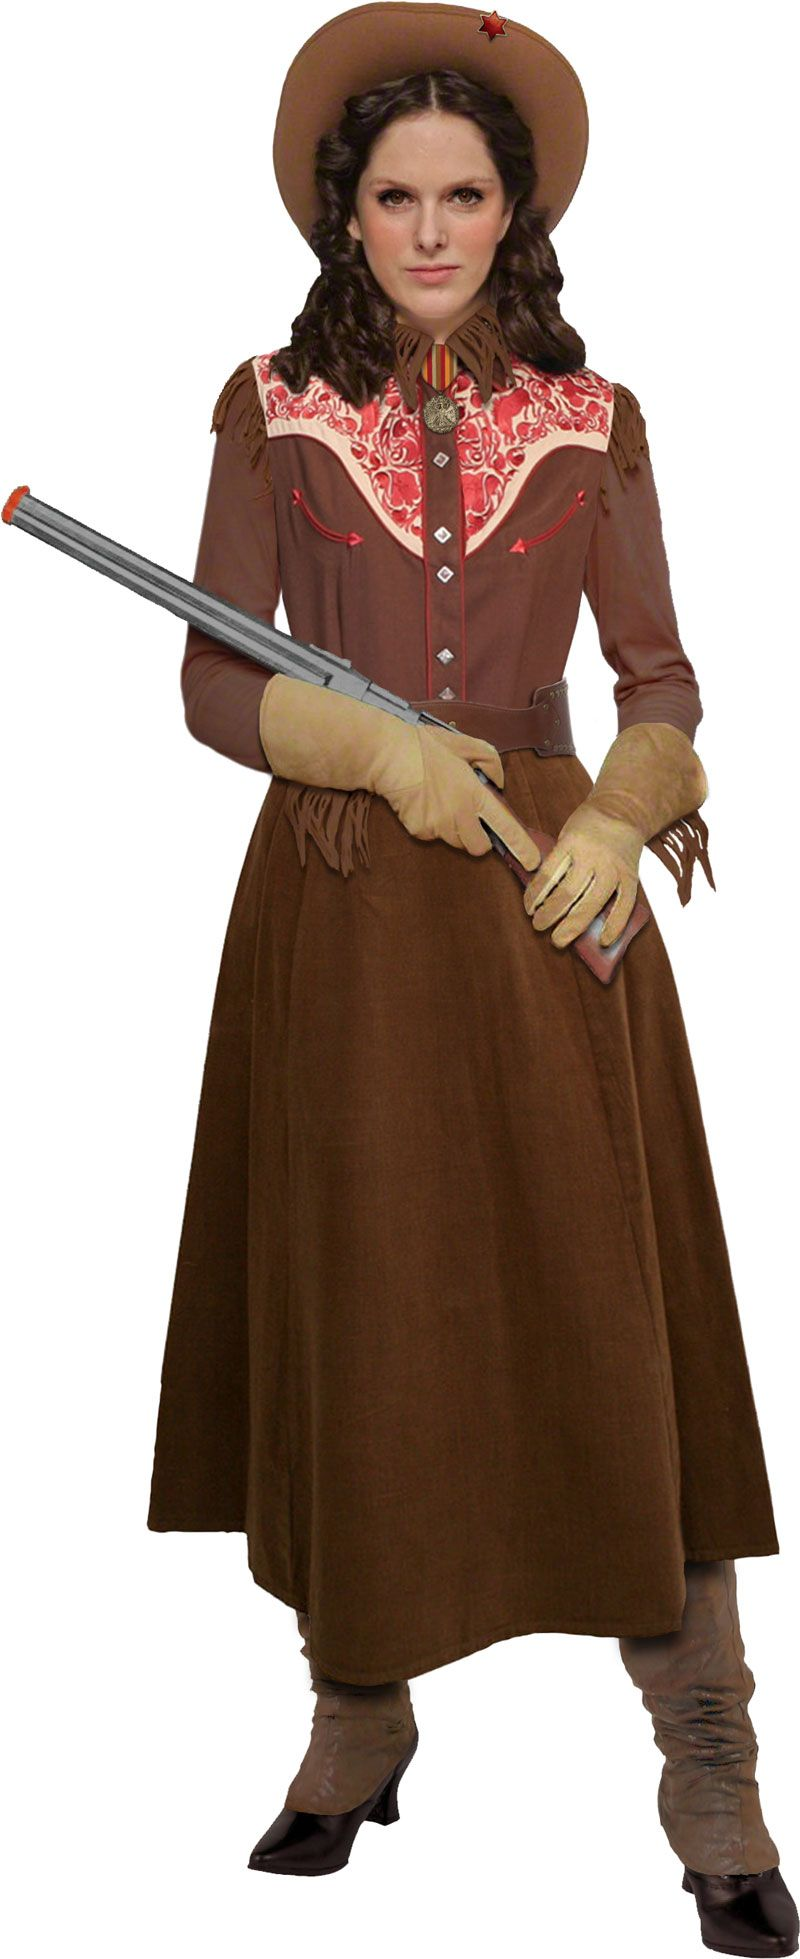 annie oakley costume | Annie Oakley | Take Back Halloween!  sc 1 st  Pinterest & annie oakley costume | Annie Oakley | Take Back Halloween! | Costume ...